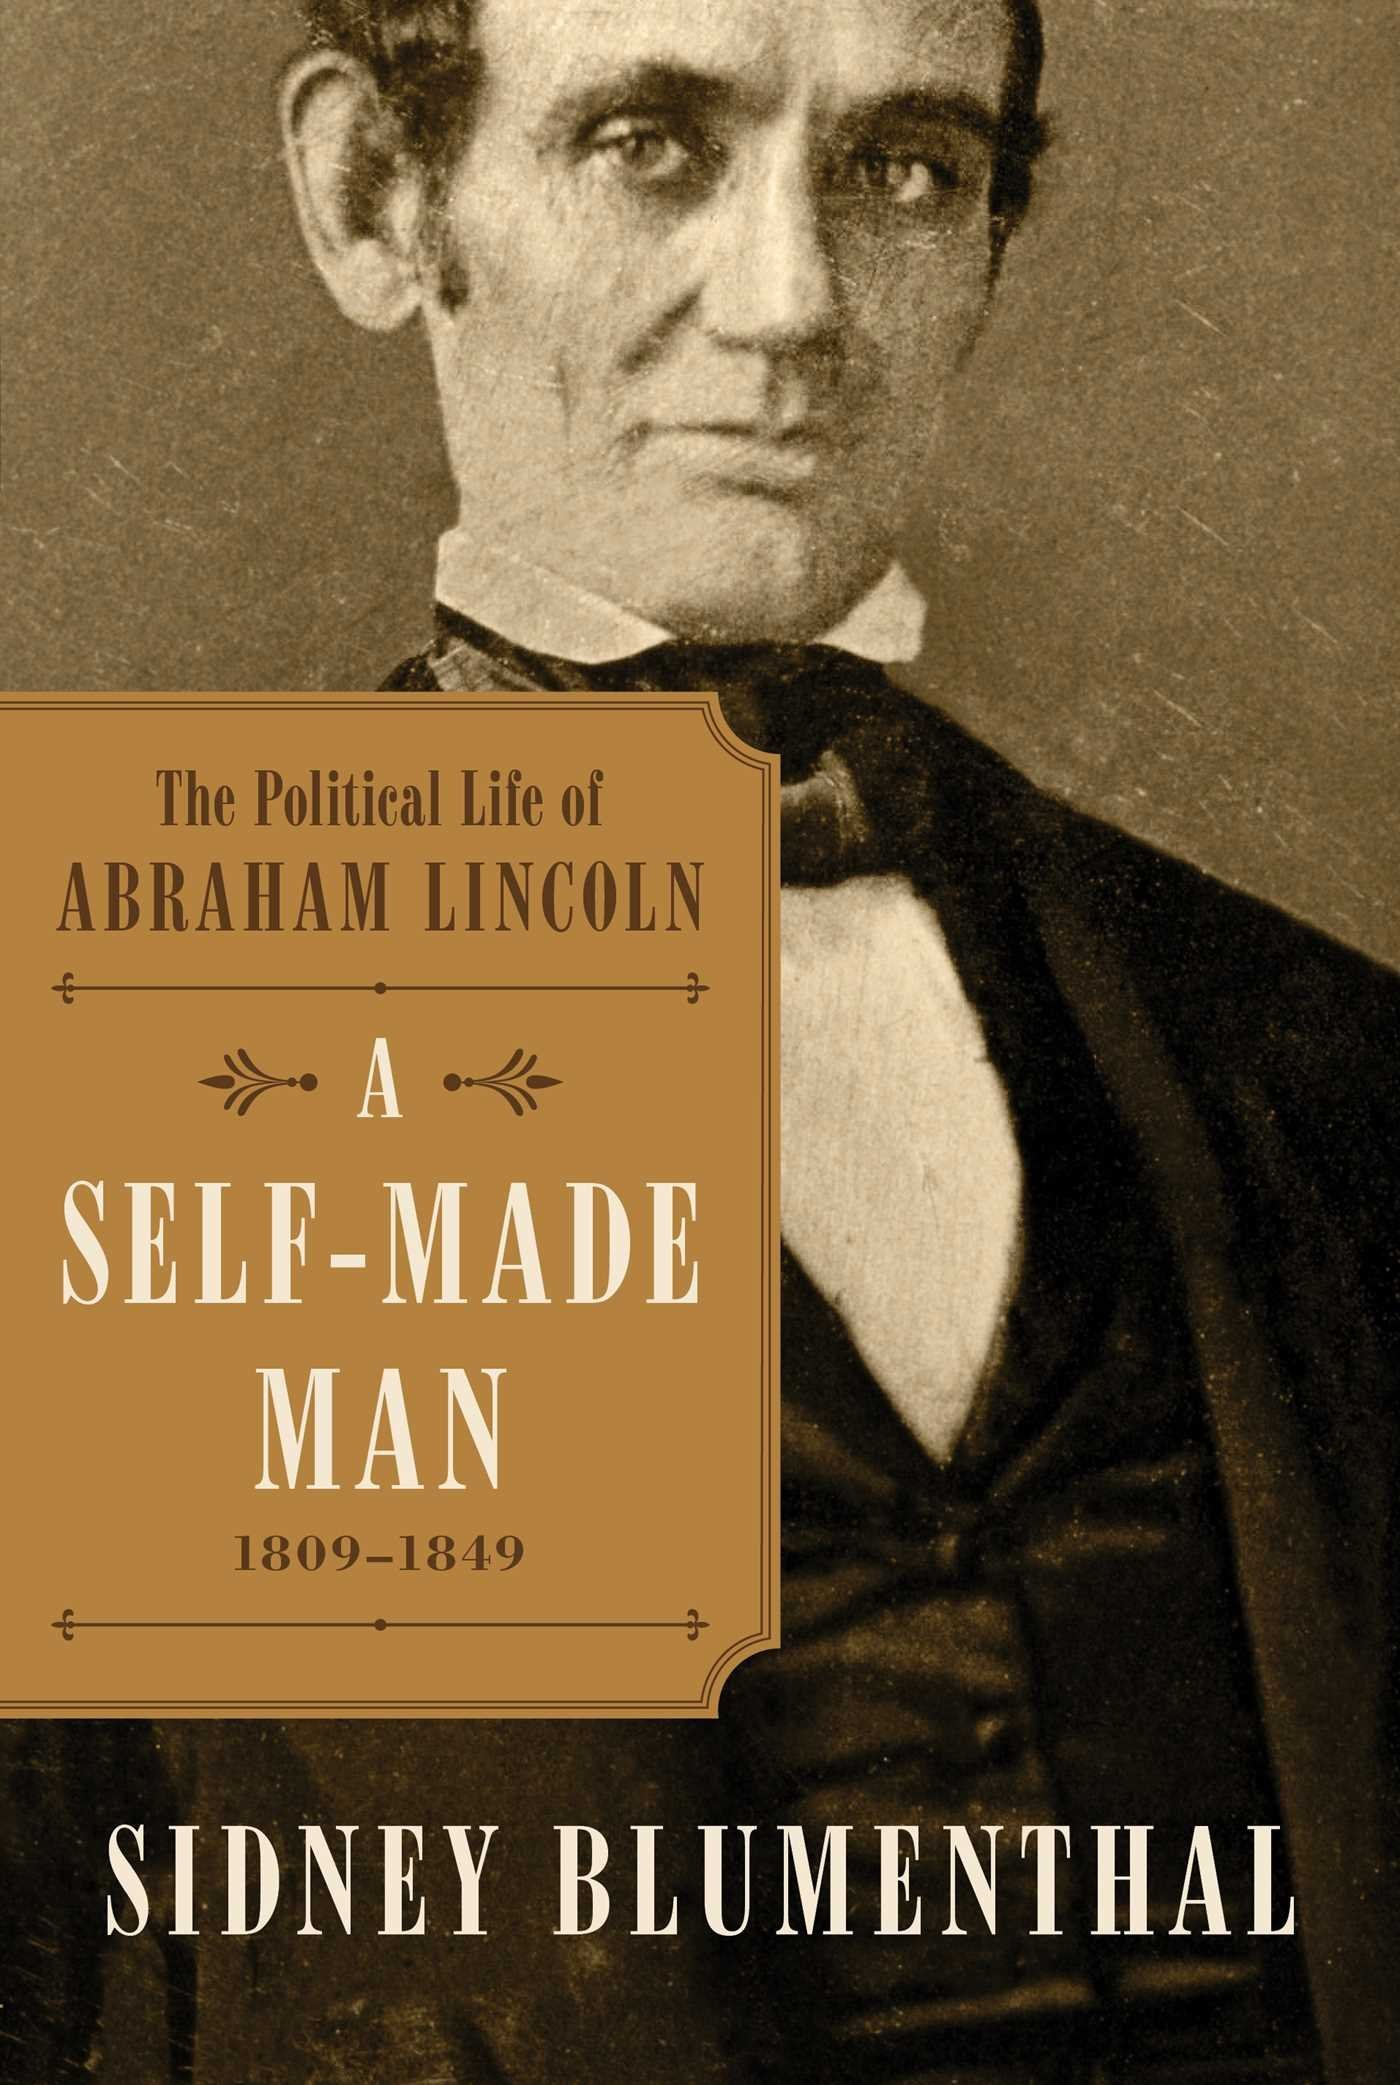 Cover of The Political Life of Abraham Lincoln: A Self Made Man by Sidney Blumenthal